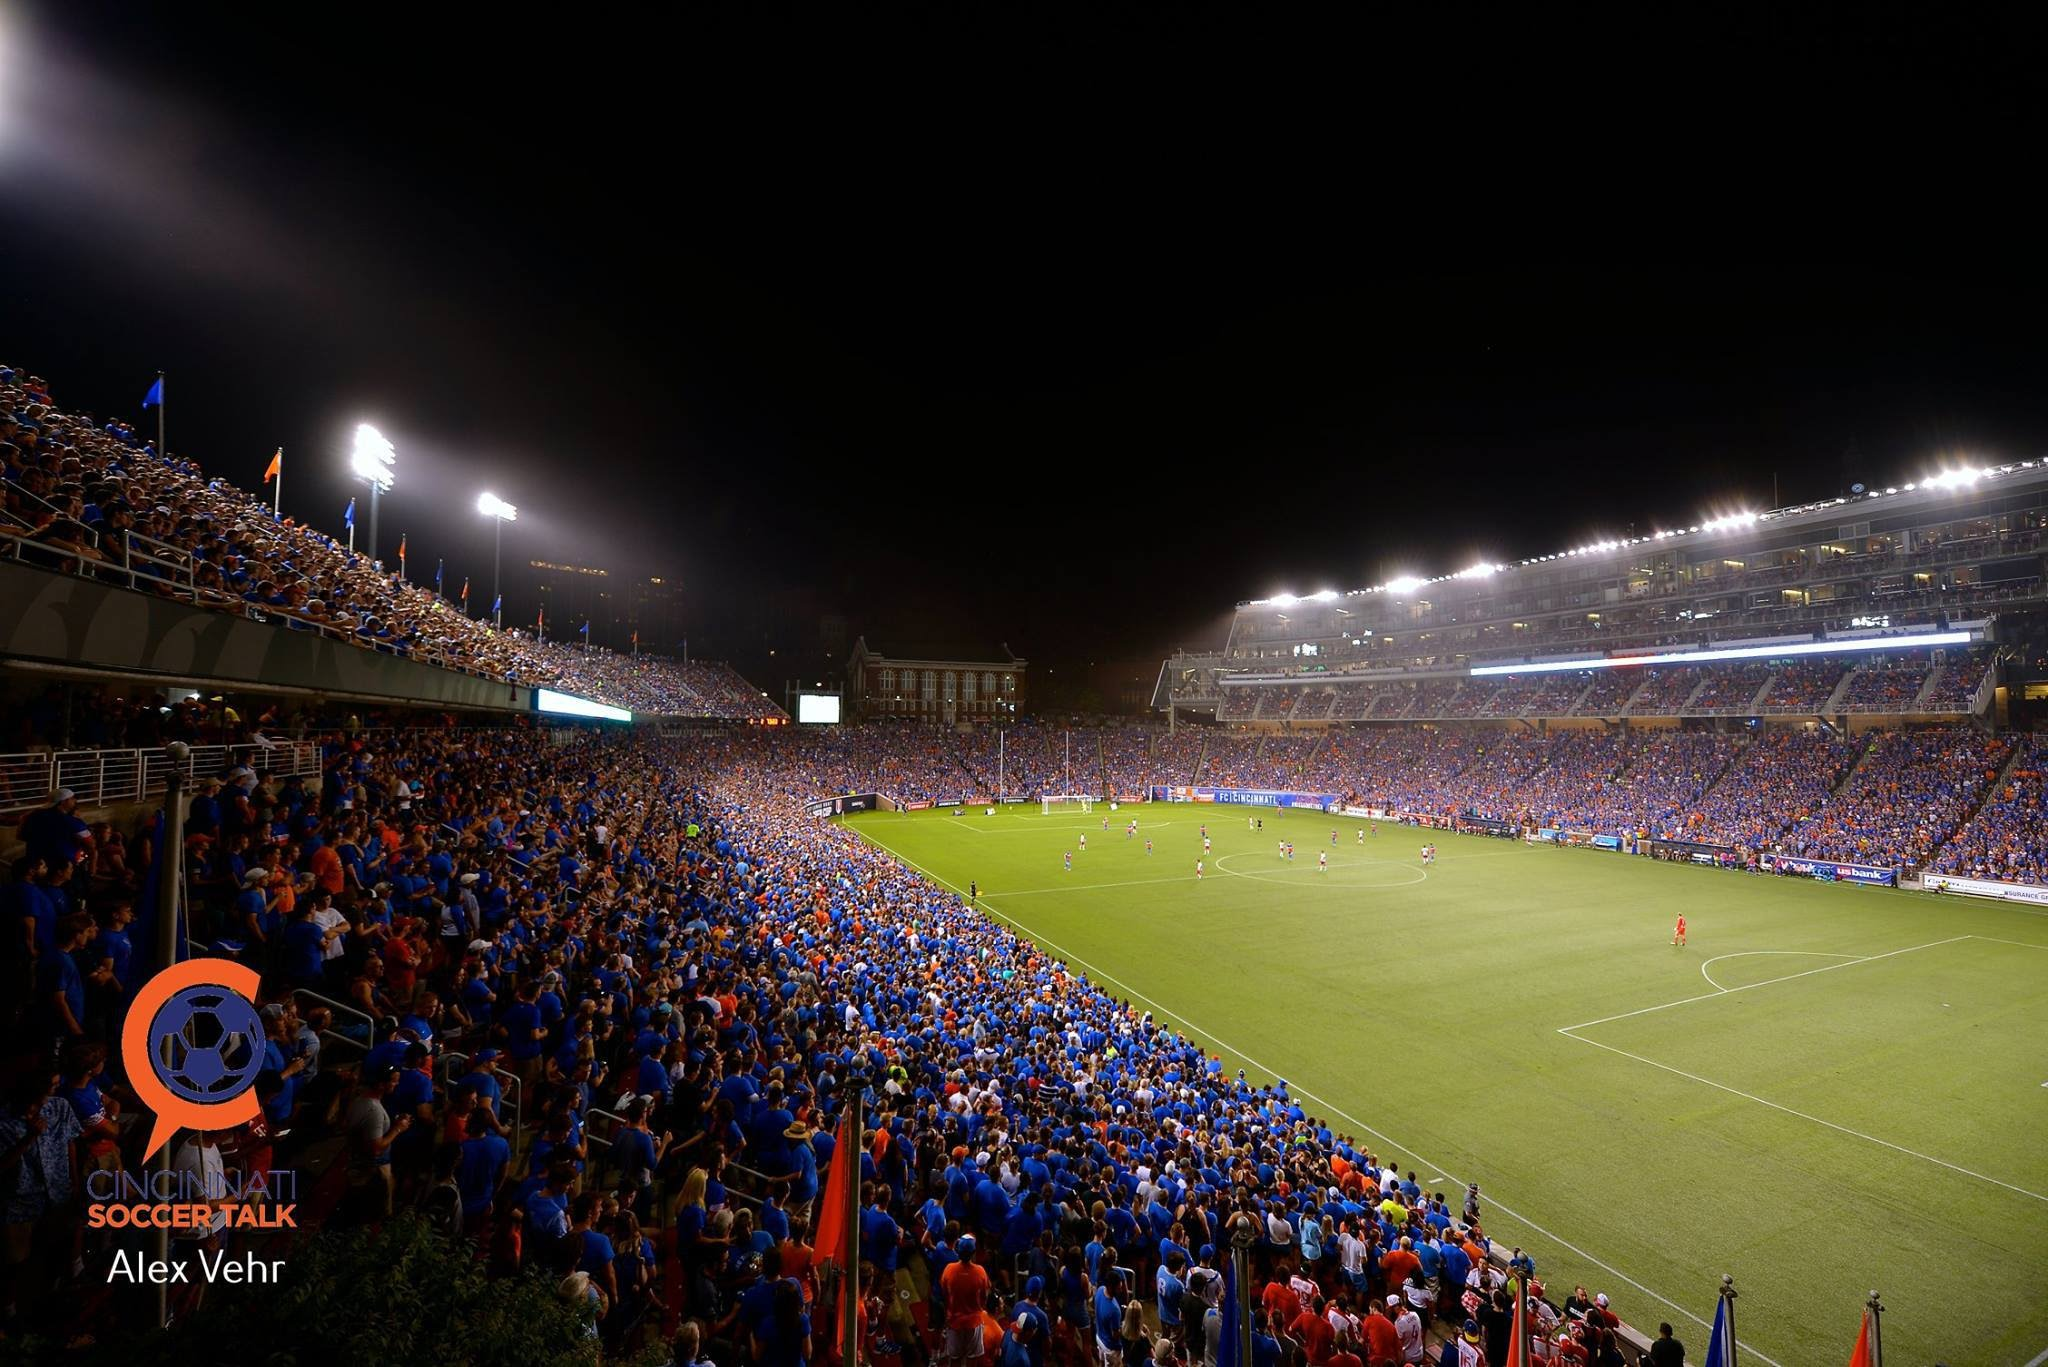 Check out this FC Cincinnati crowd. They are one of the highest attended football clubs in the USA!